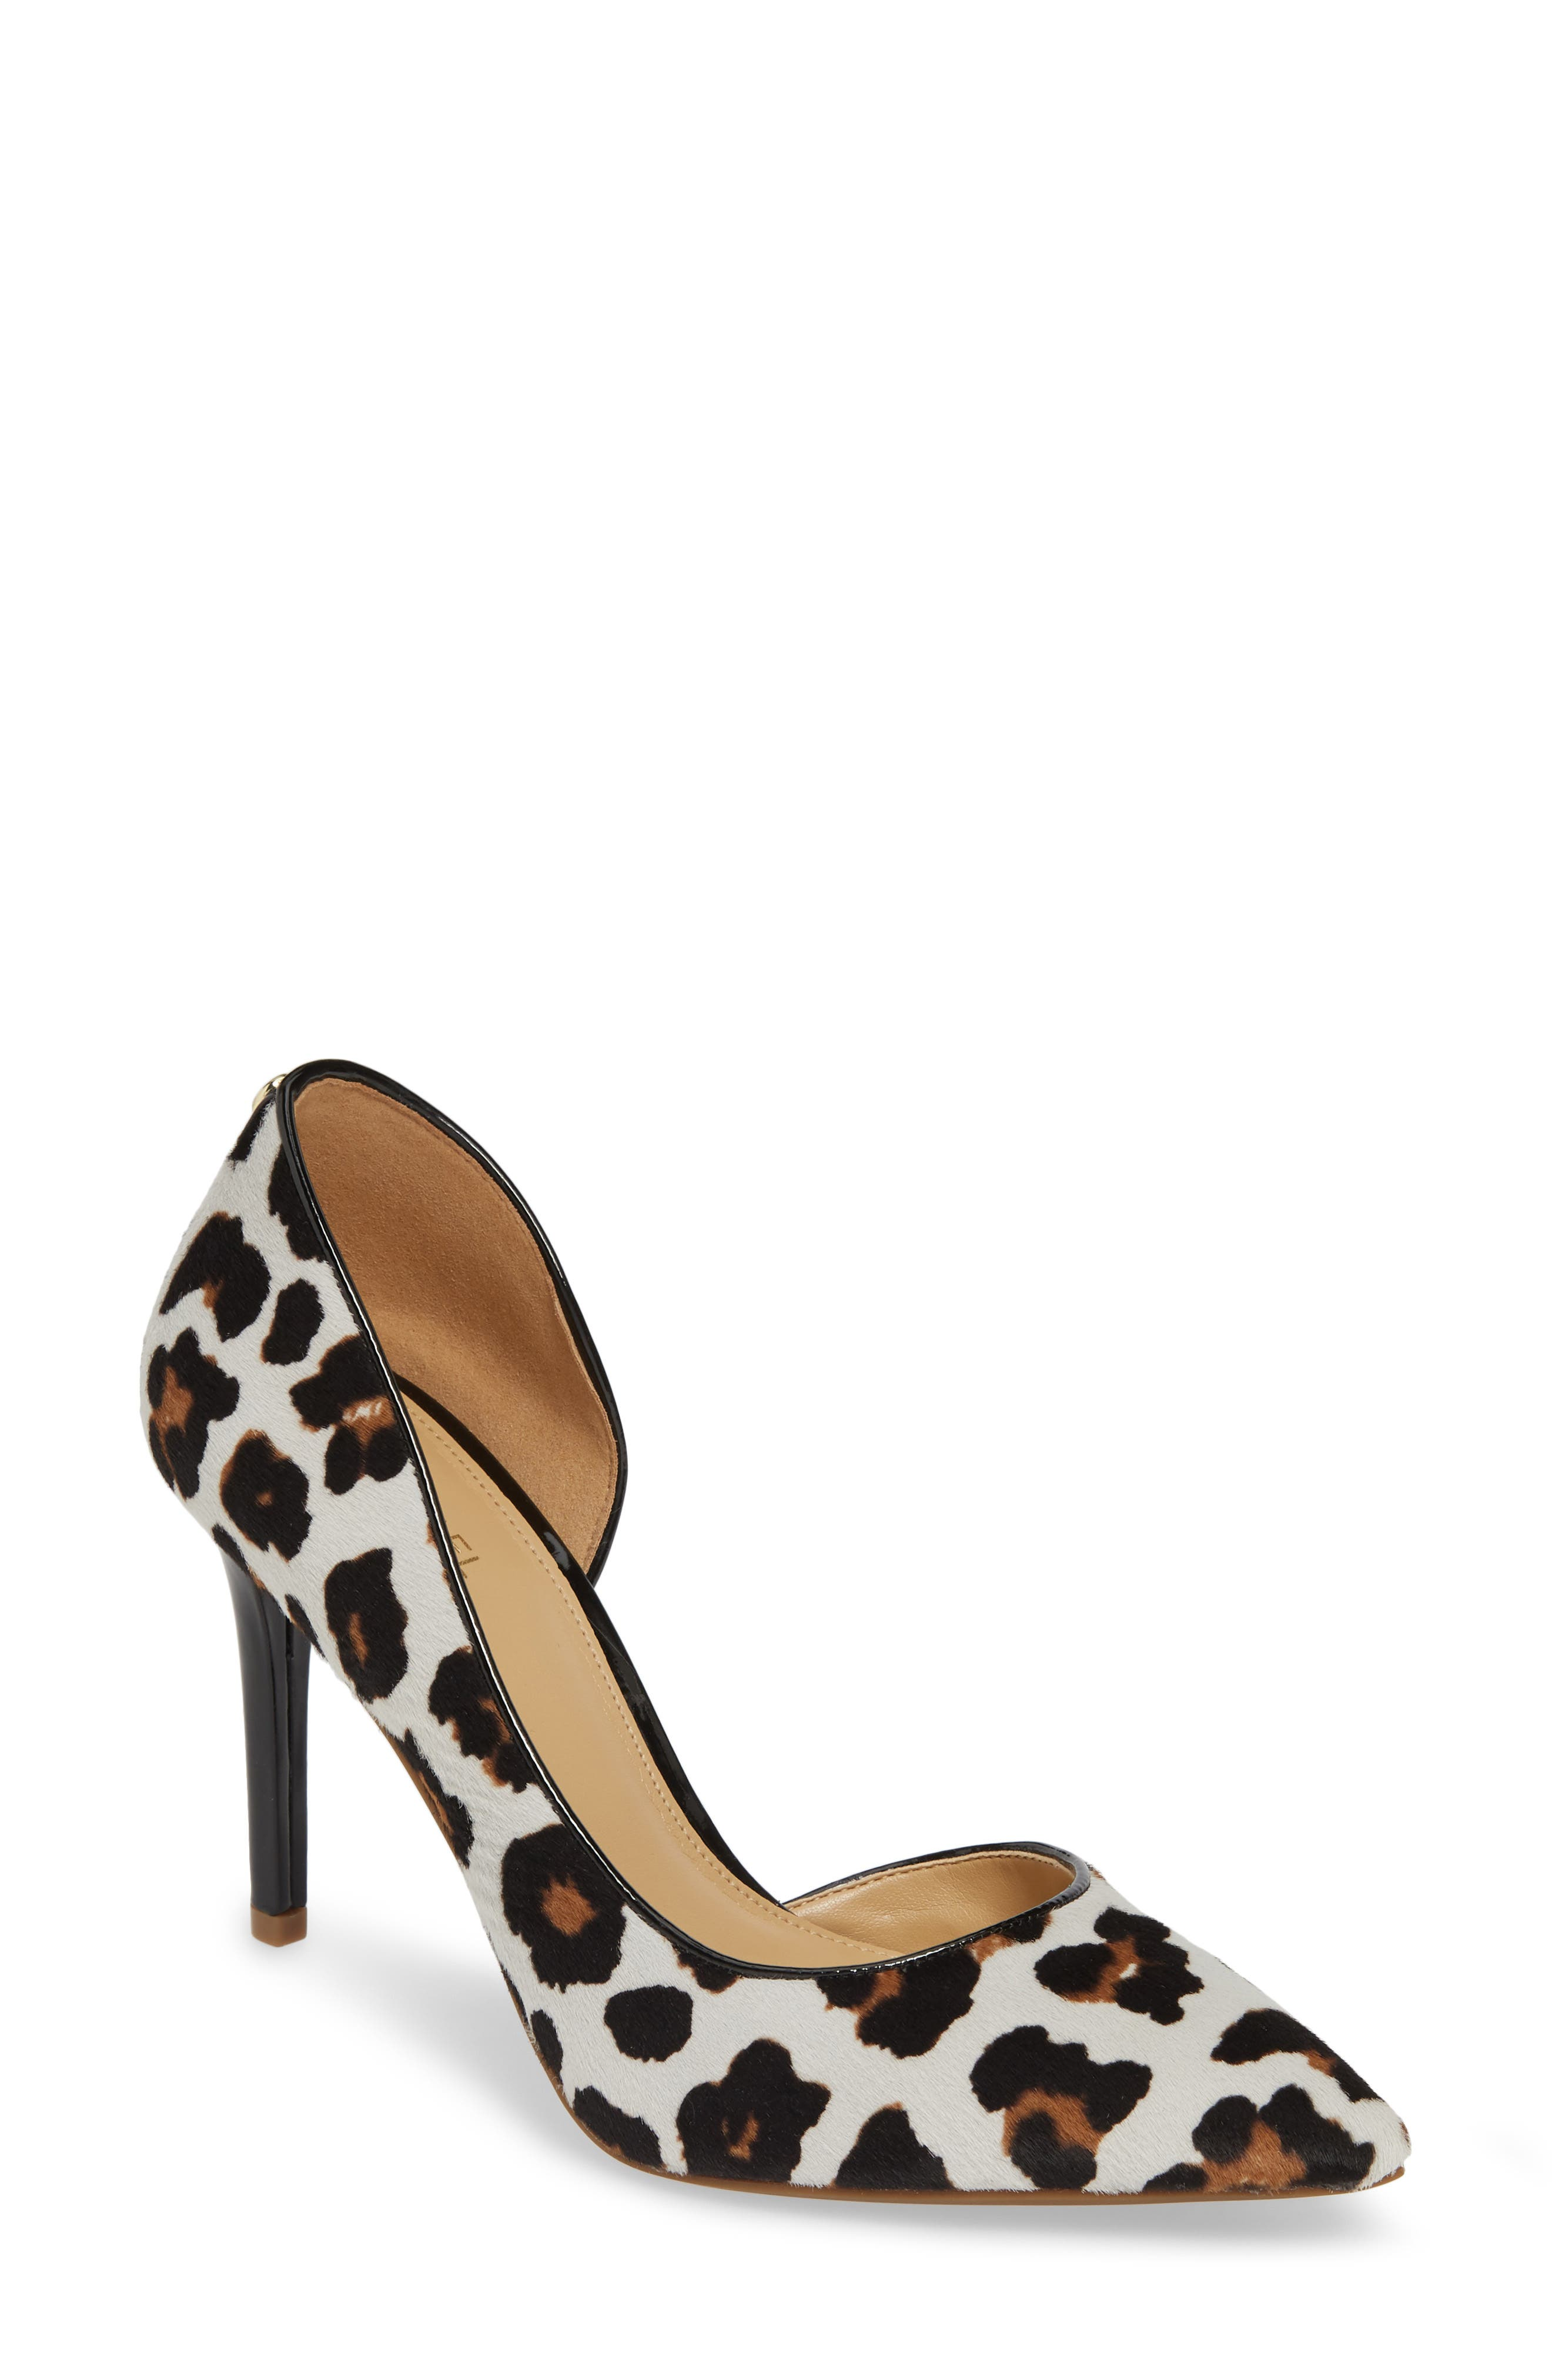 MICHAEL MICHAEL KORS, Lucile Flex Pump, Main thumbnail 1, color, 203